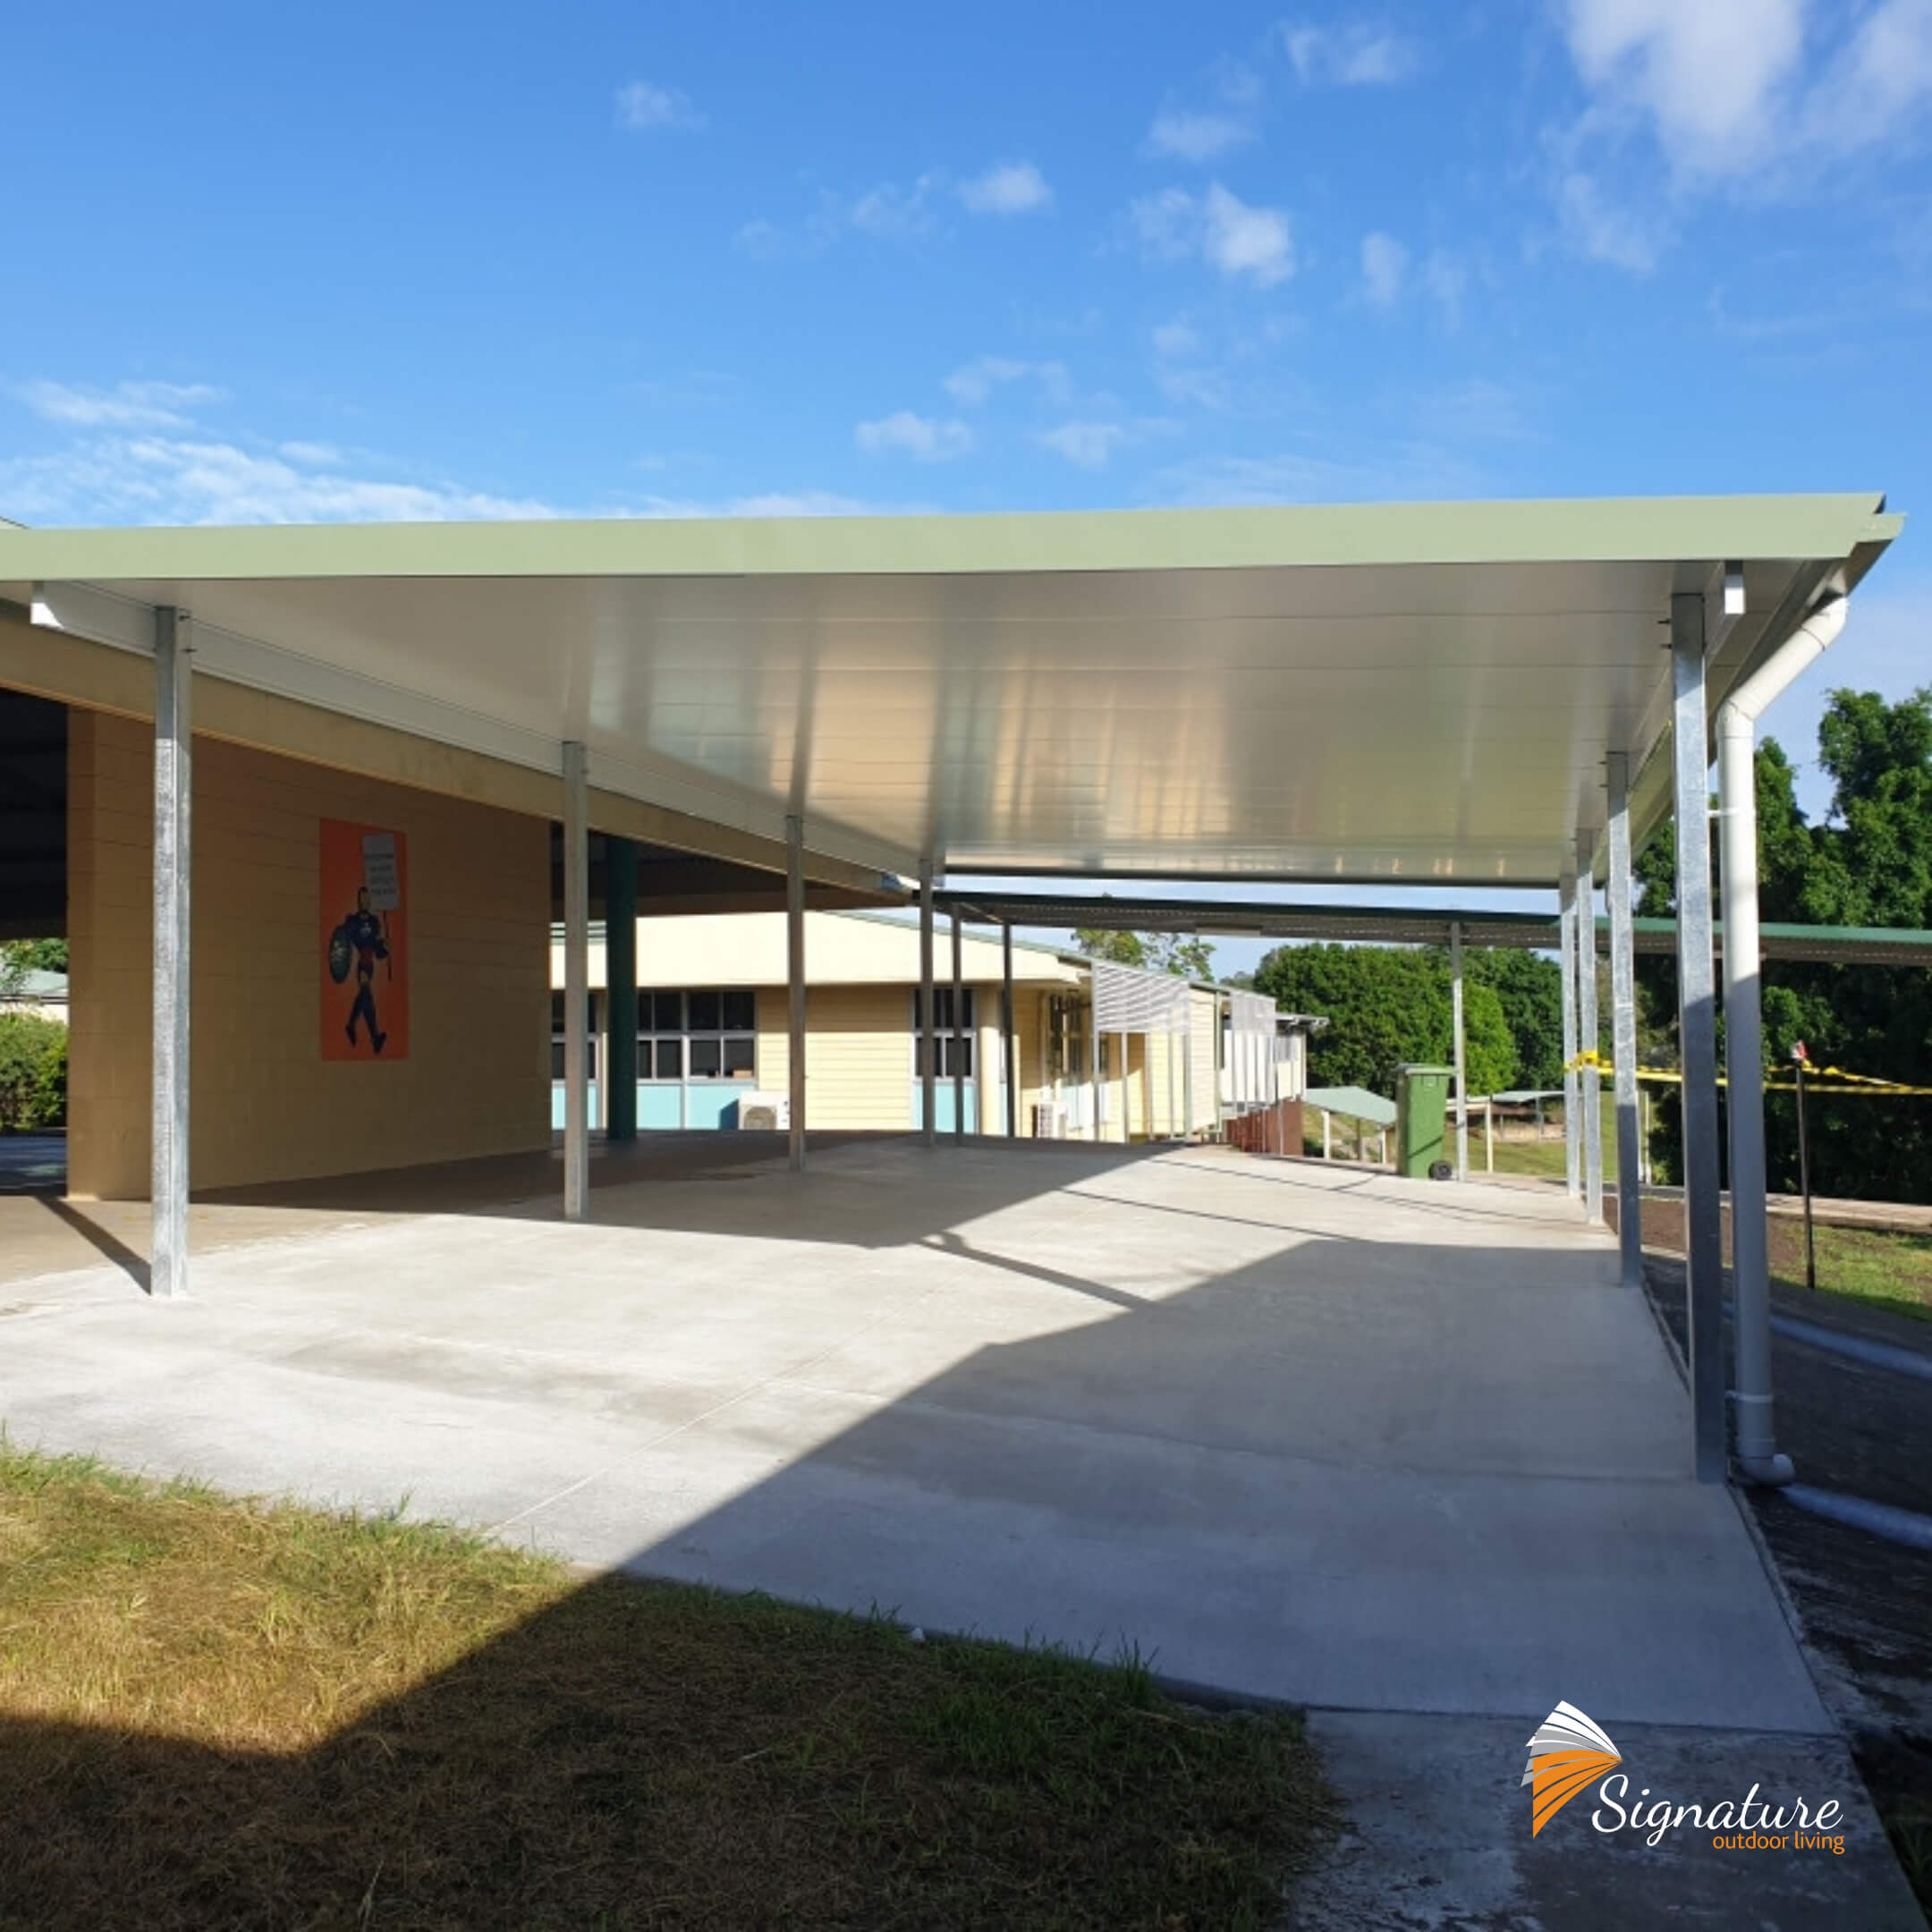 insulated patio and concreting completed for eaton hills state school